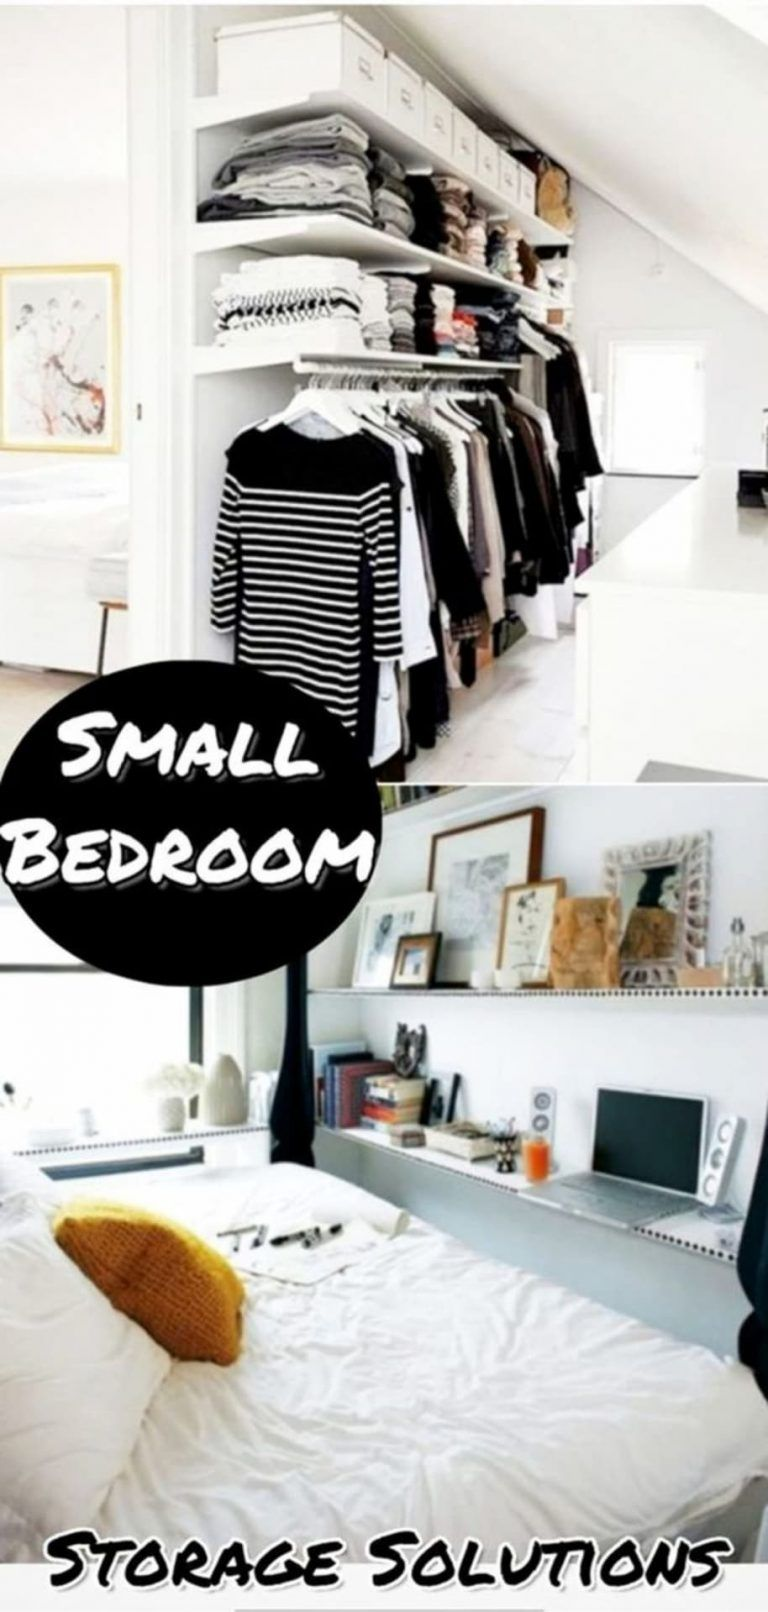 38 Creative Storage Solutions For Small Spaces Awesome Diy Ideas Small Bedroom Storage Solutions Small Space Storage Bedroom Bedroom Storage For Small Rooms